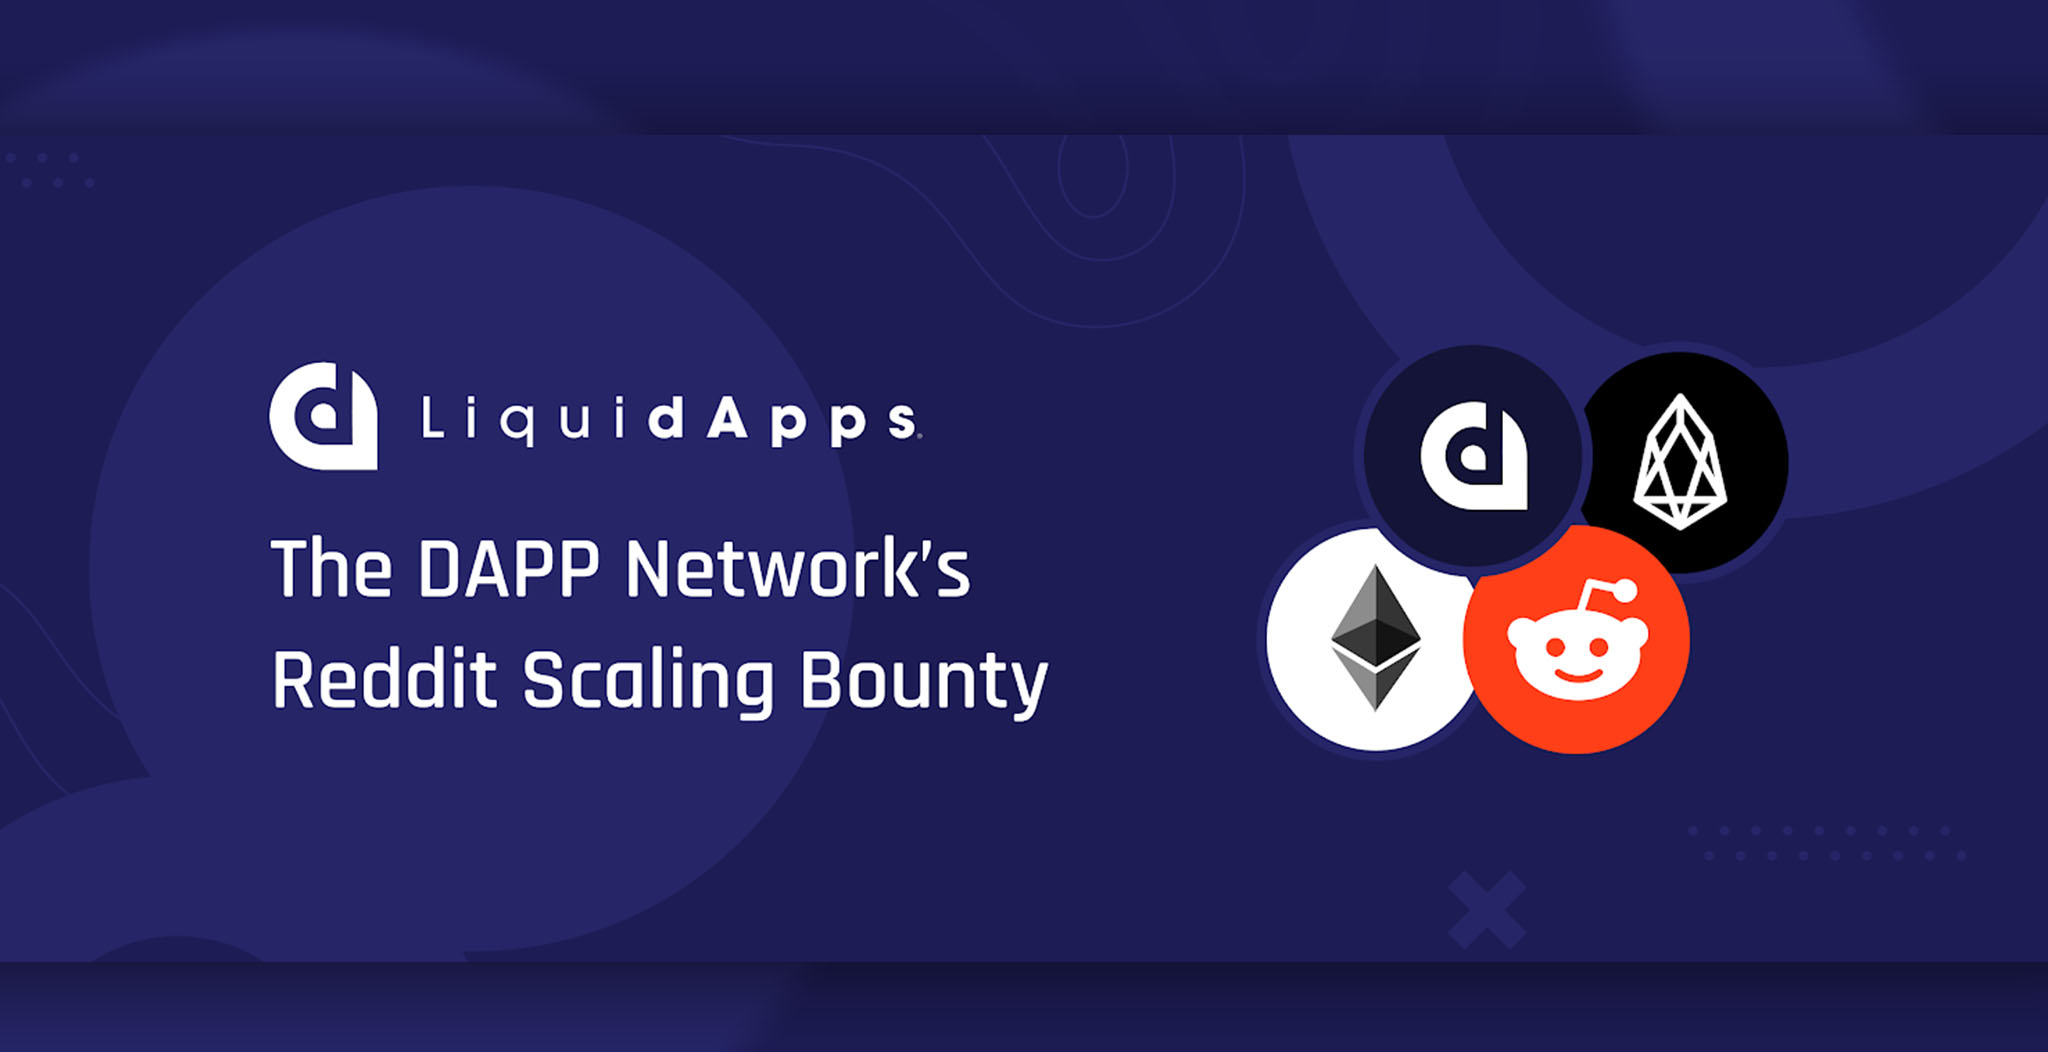 the-dapp-network-reddit-scaling-bounty